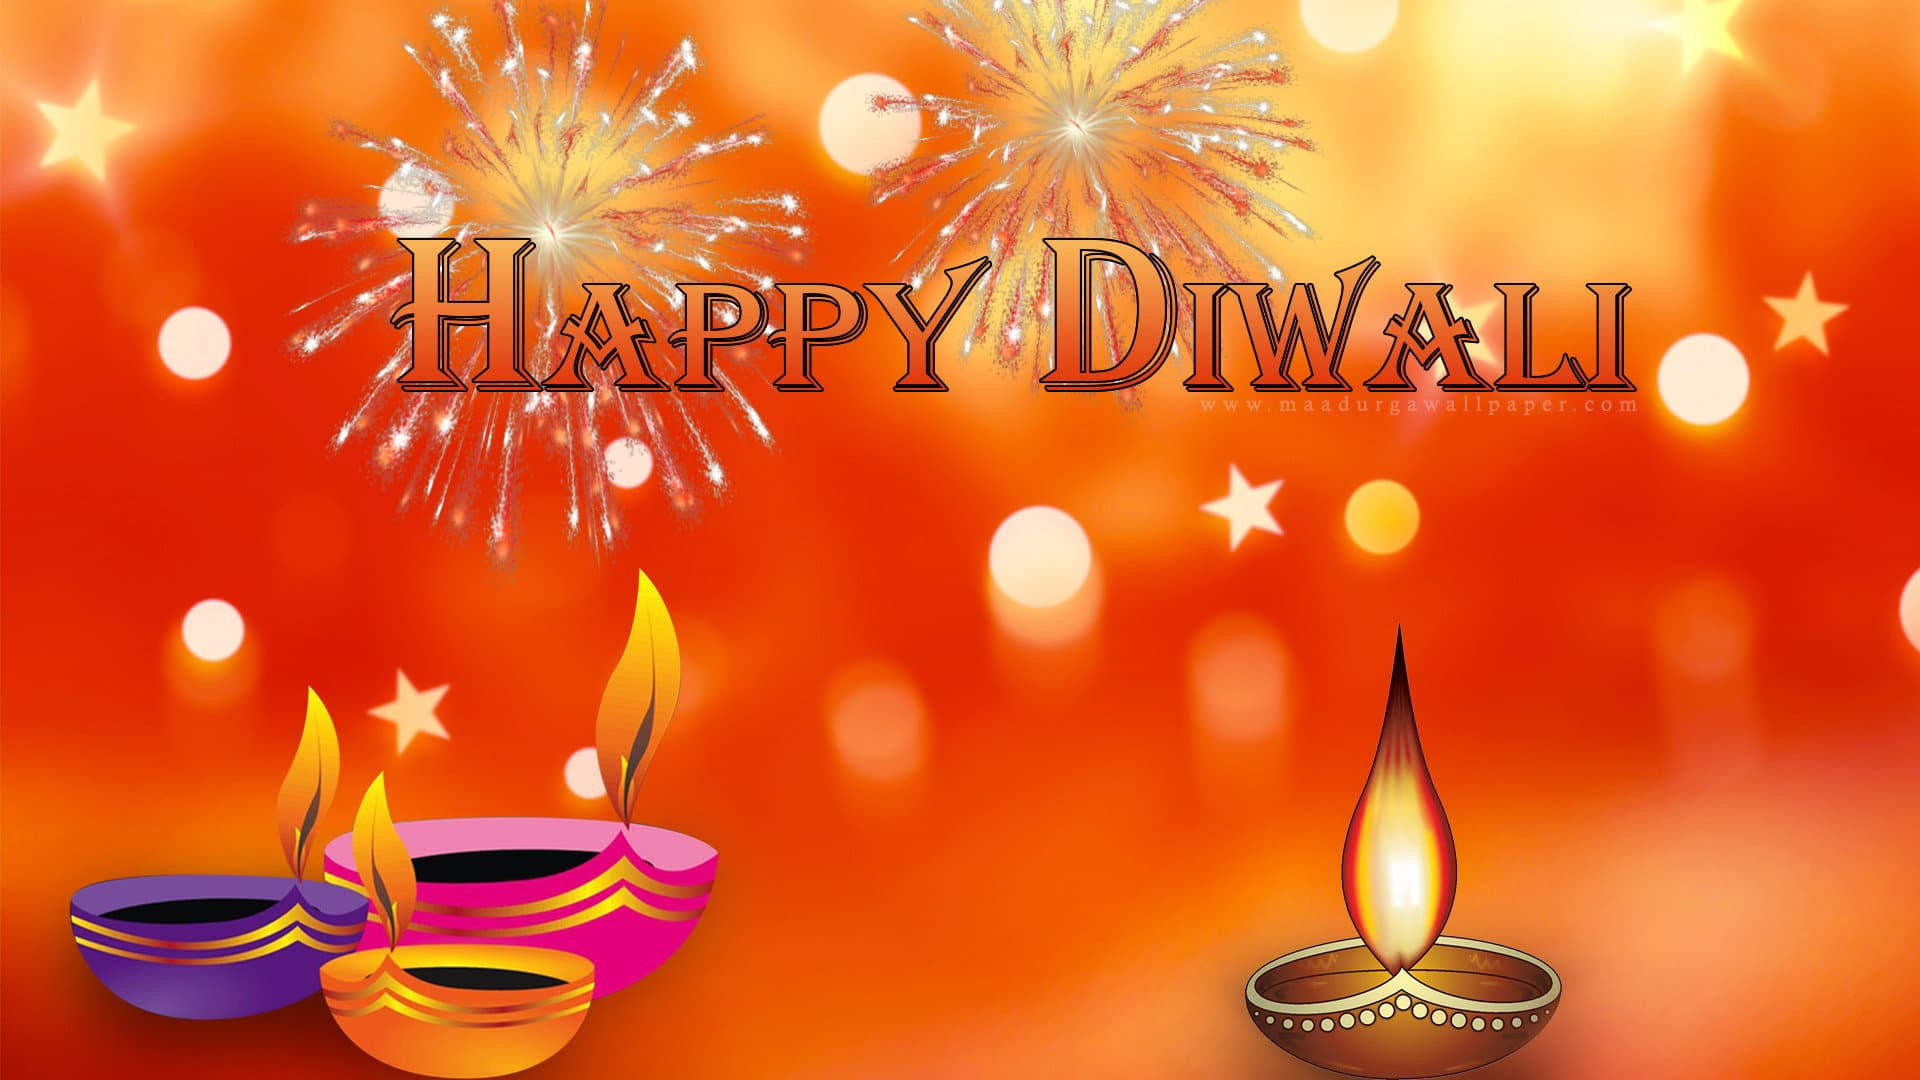 Happy diwali desktop wallpapers free hd images happy diwali greeting kristyandbryce Gallery